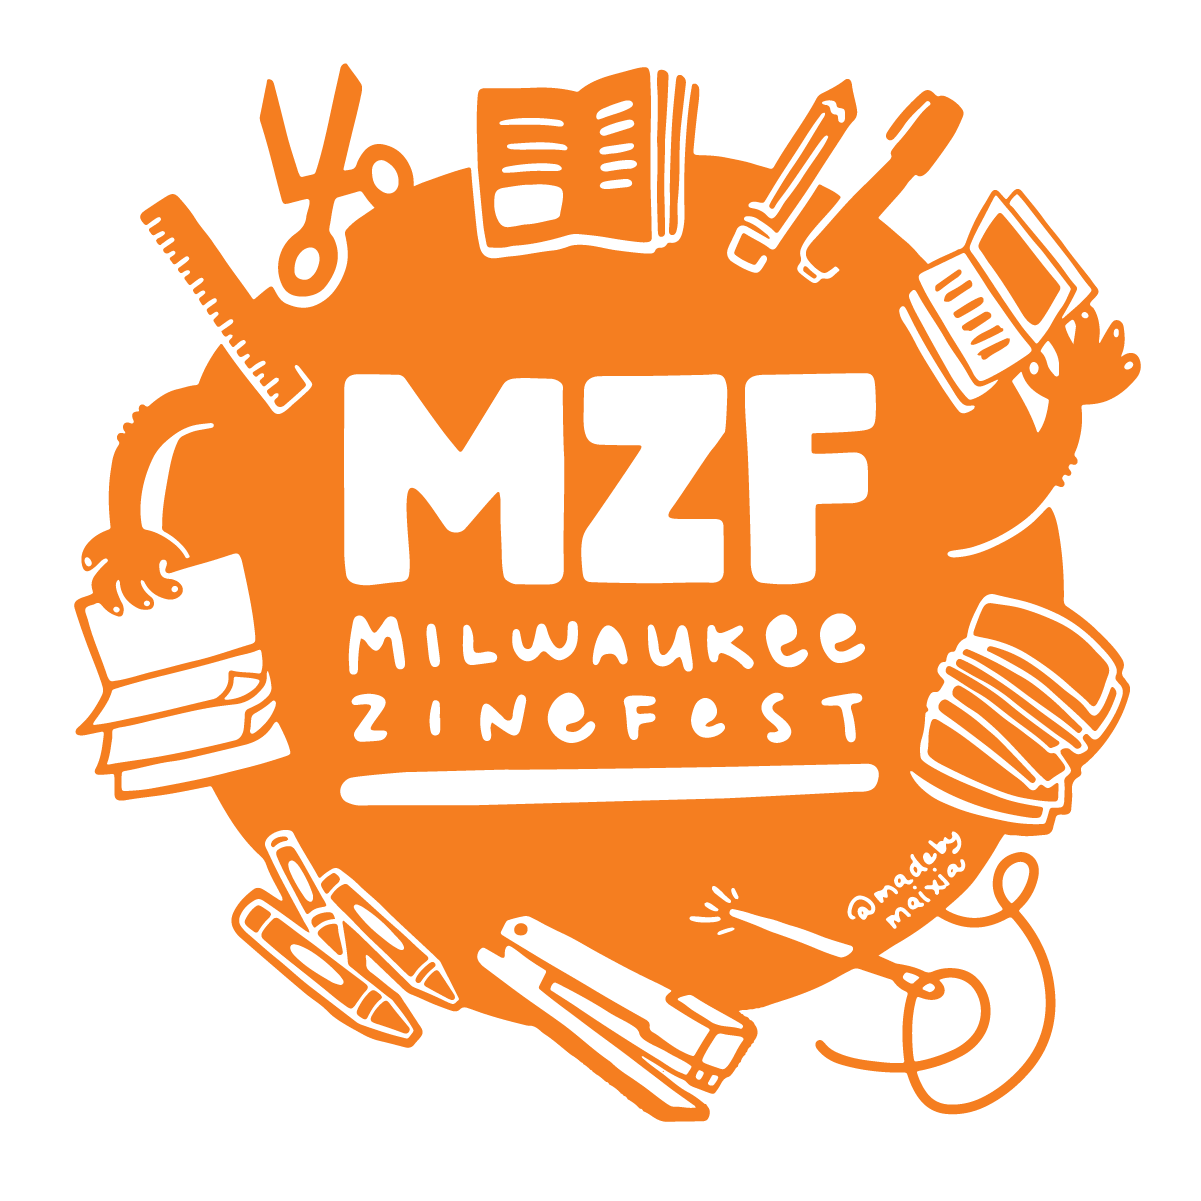 Milwaukee Zine Fest Returns This Spring